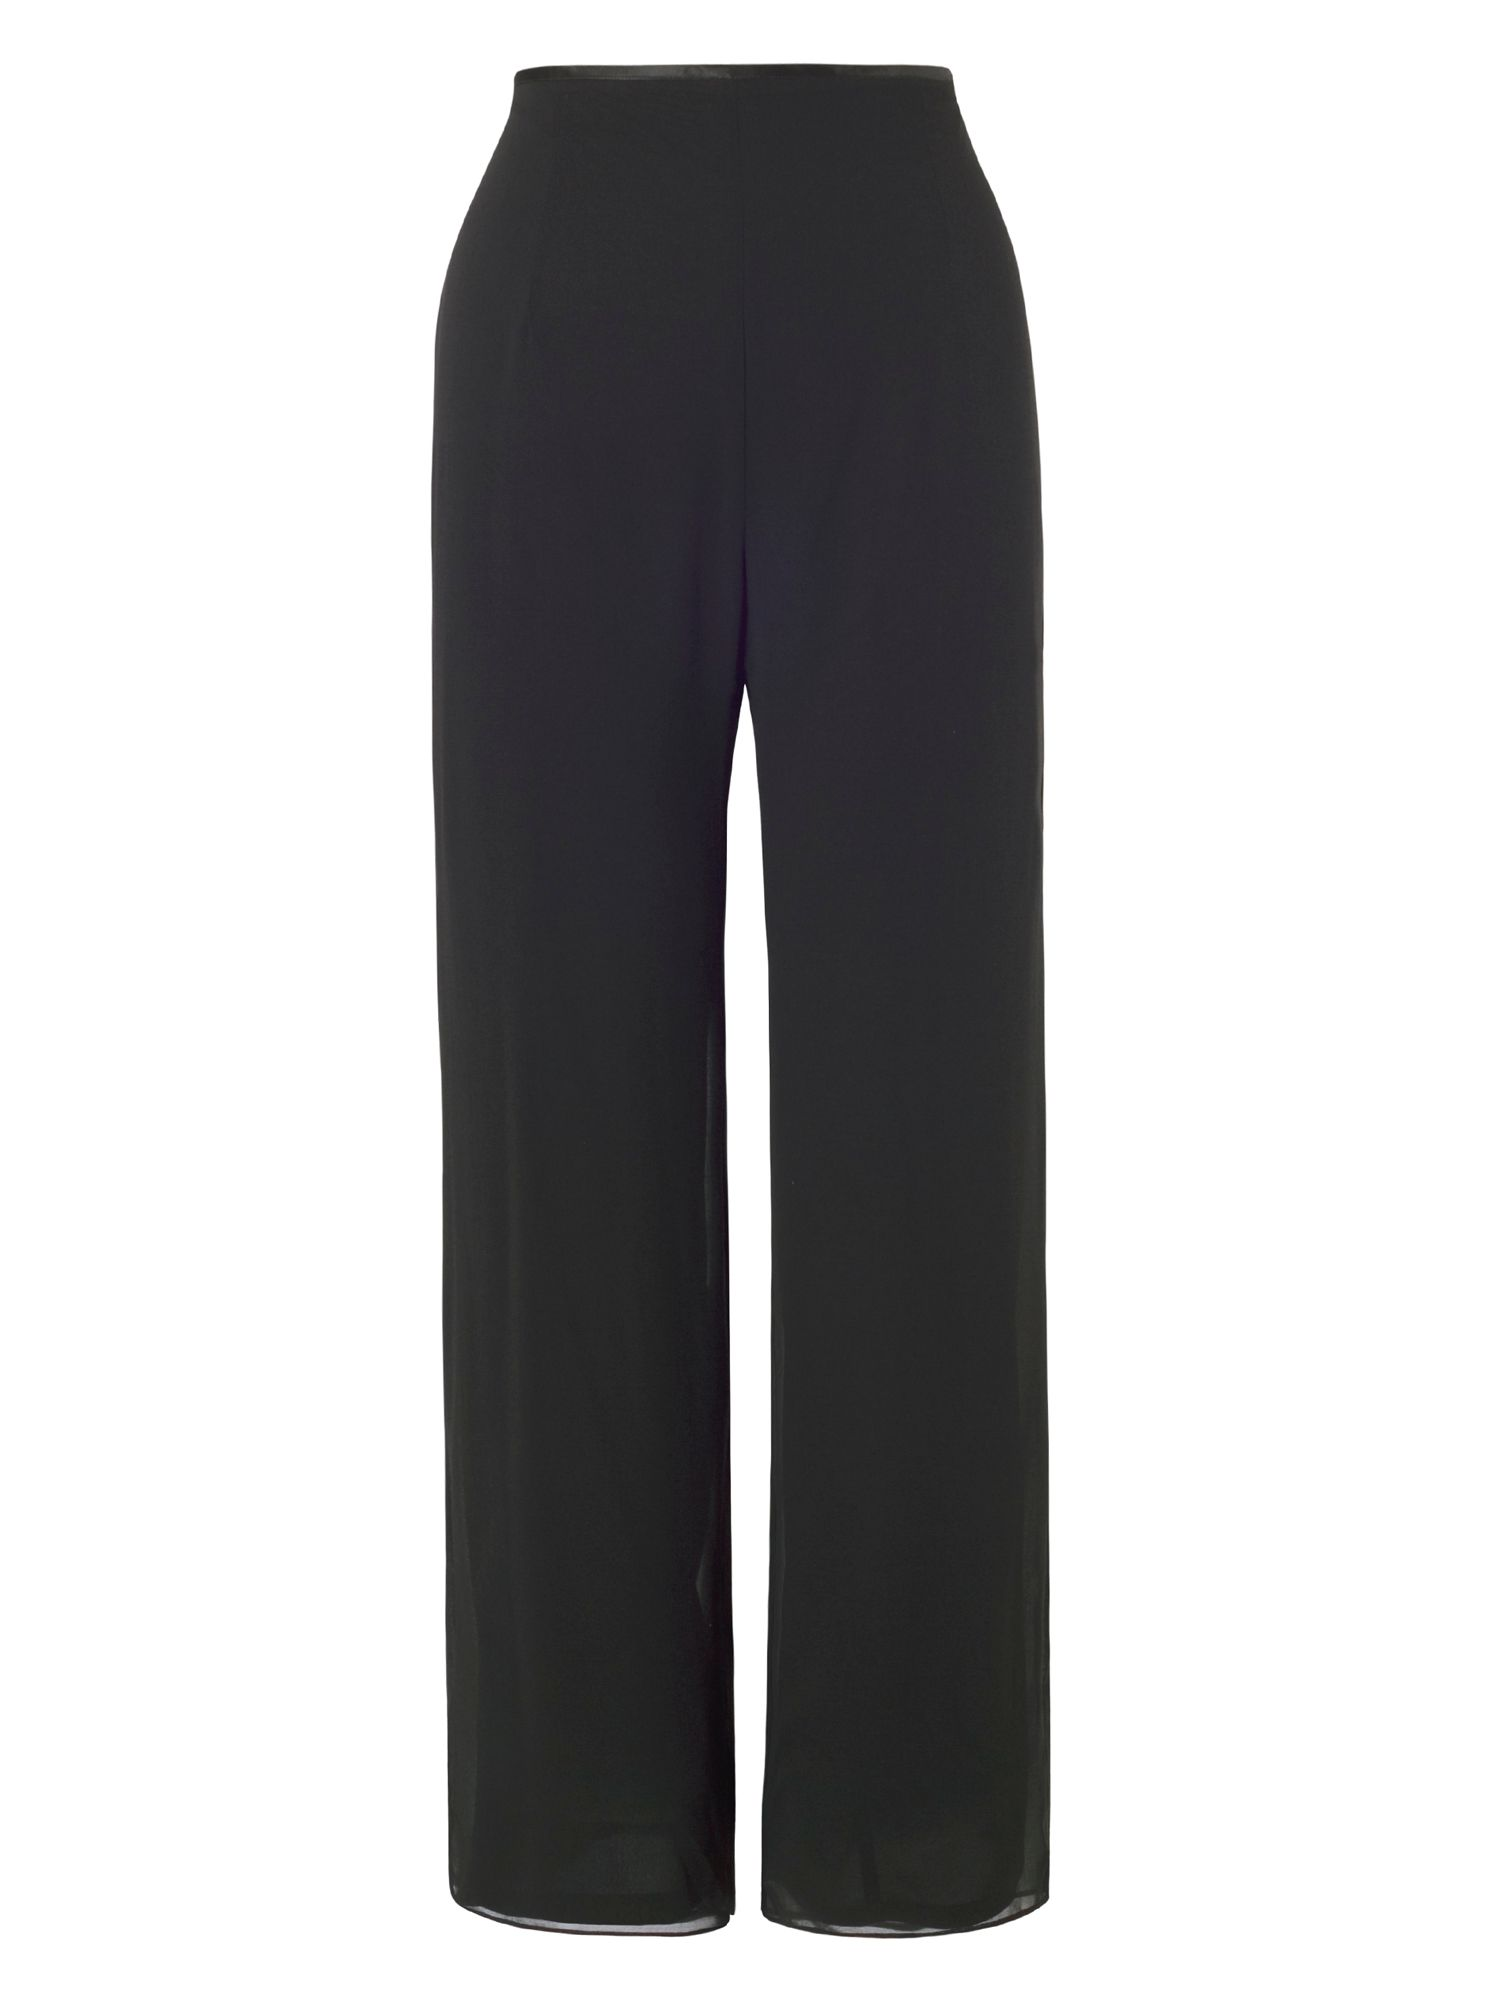 Chesca Chiffon Trouser with Jersey Lining, Black